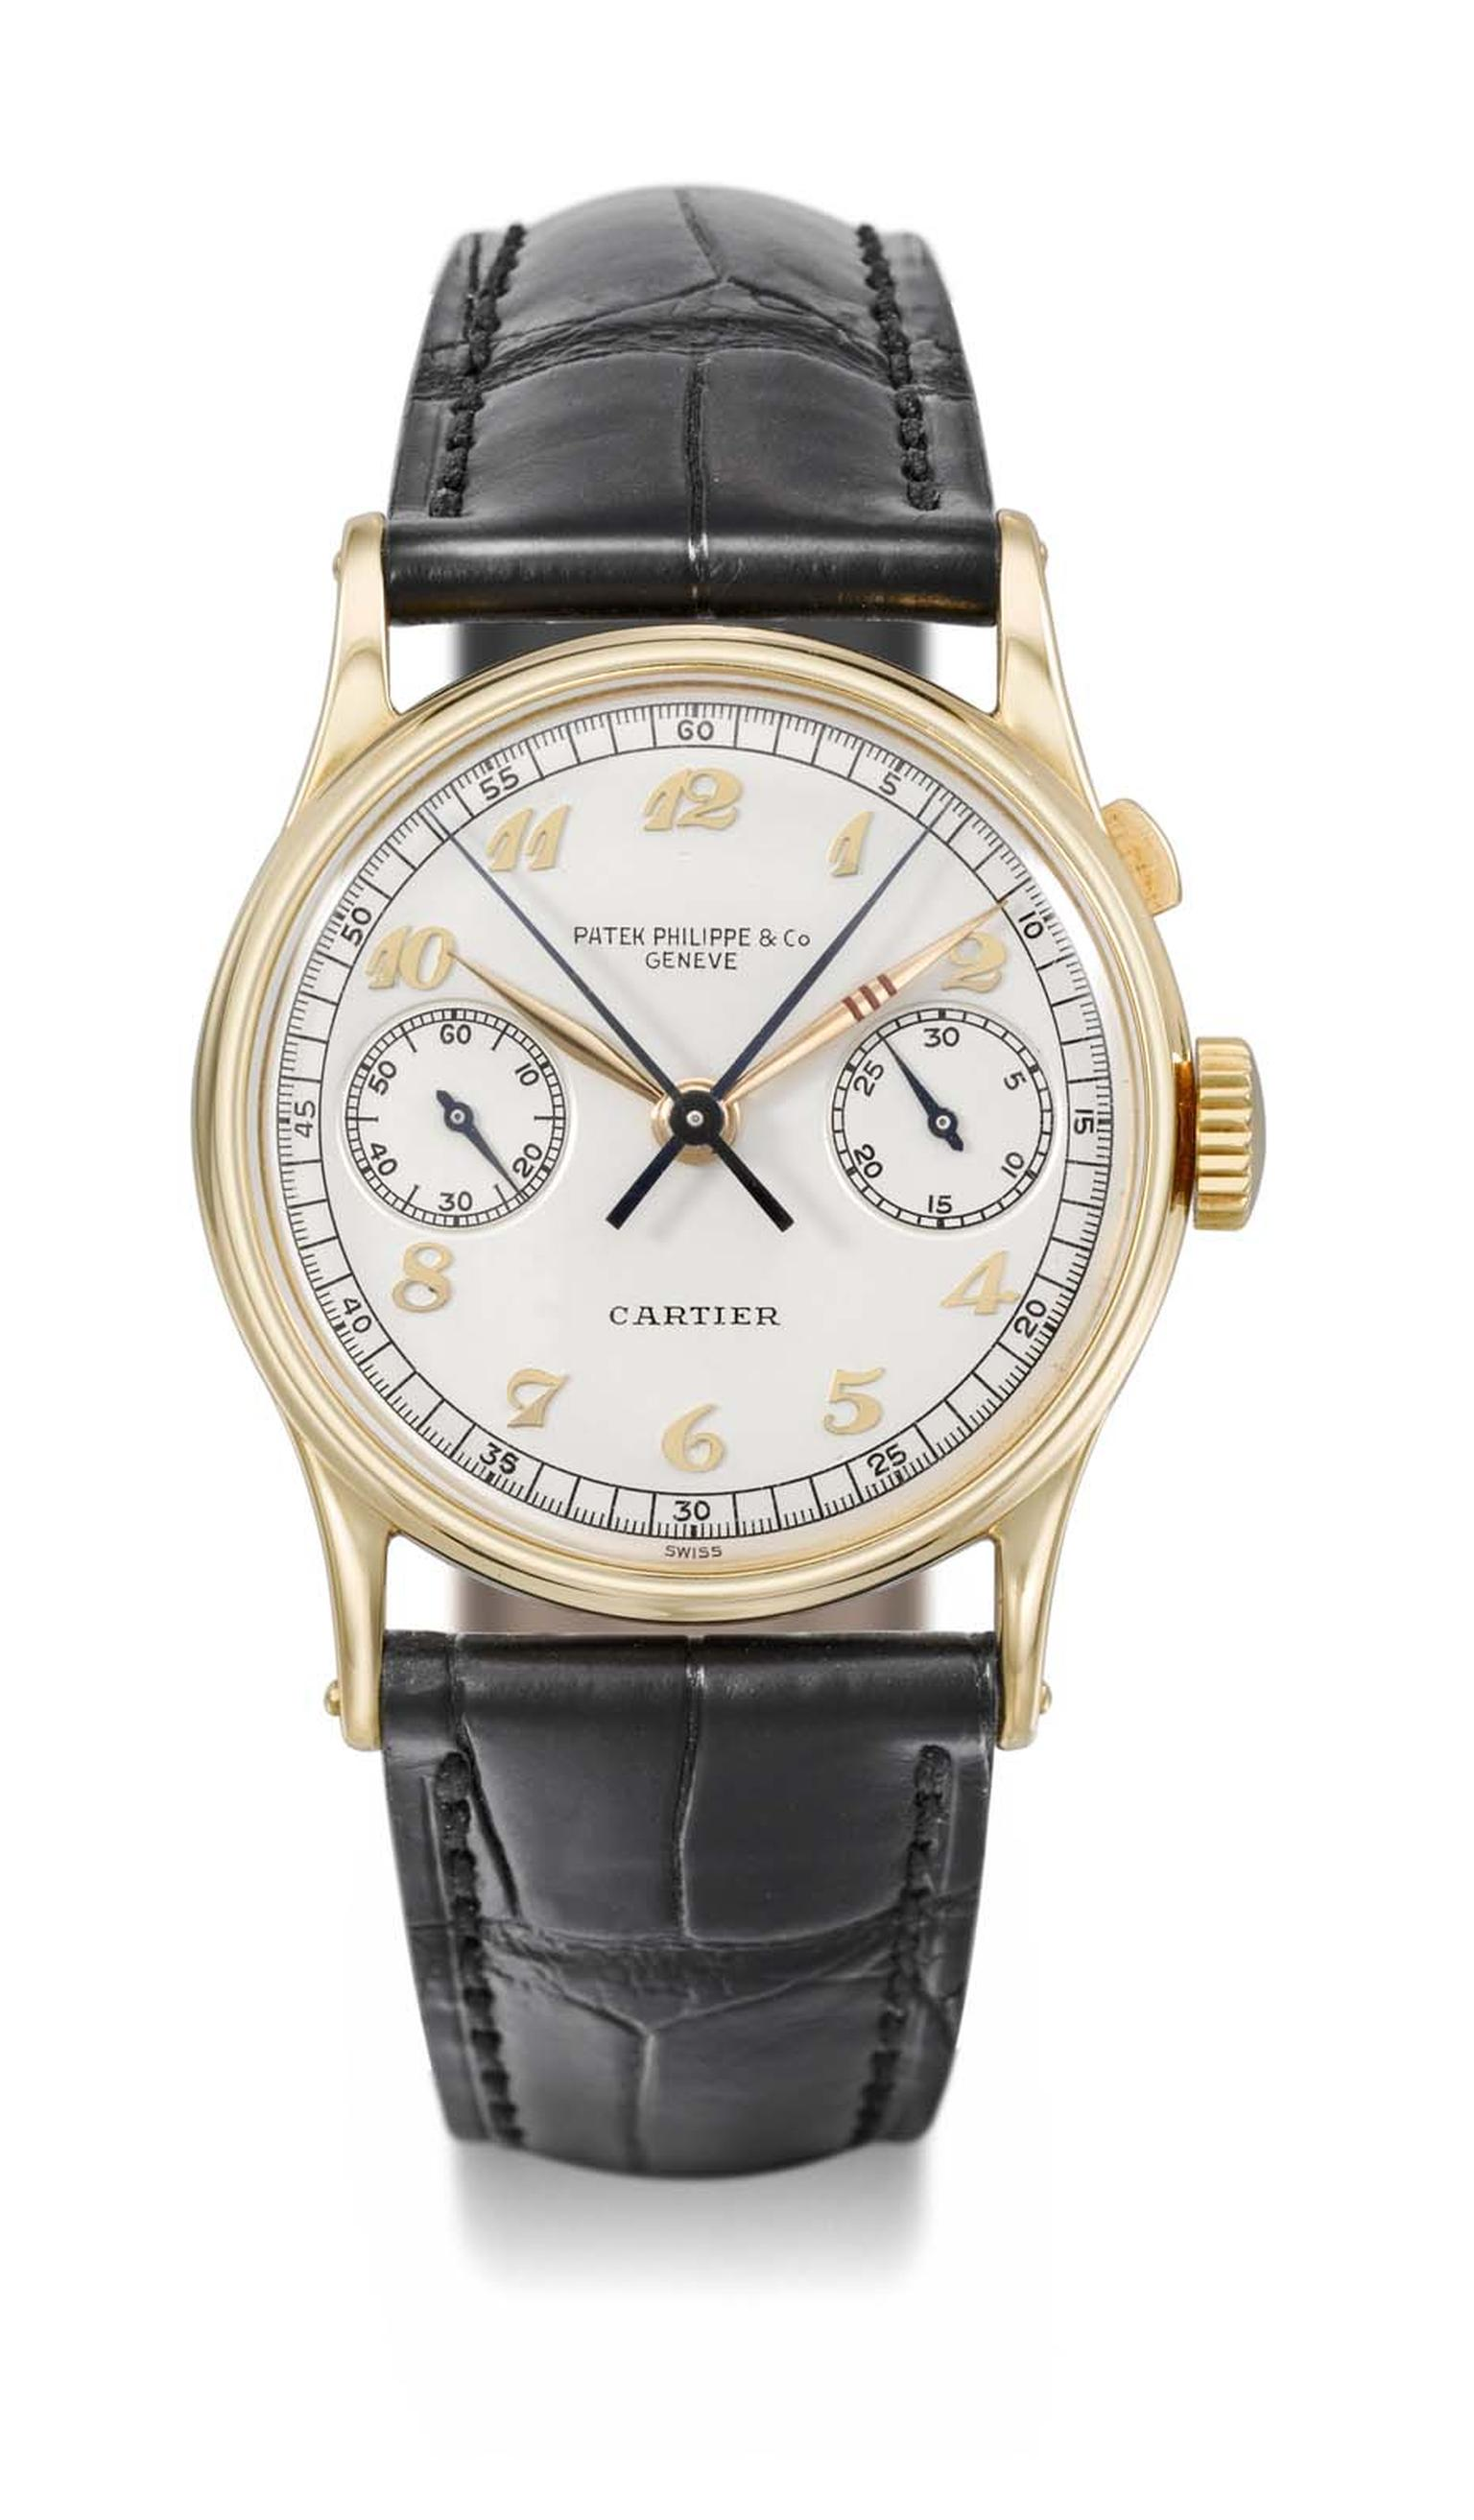 "Known as ""The Boeing"", the Patek Philippe watch Reference 130 is a rare gold wristwatch with a single button split-seconds chronograph, sold by Cartier in 1939 to commercial aviation pioneer Mr. William E. Boeing of Seattle, Washington. Never before offer"